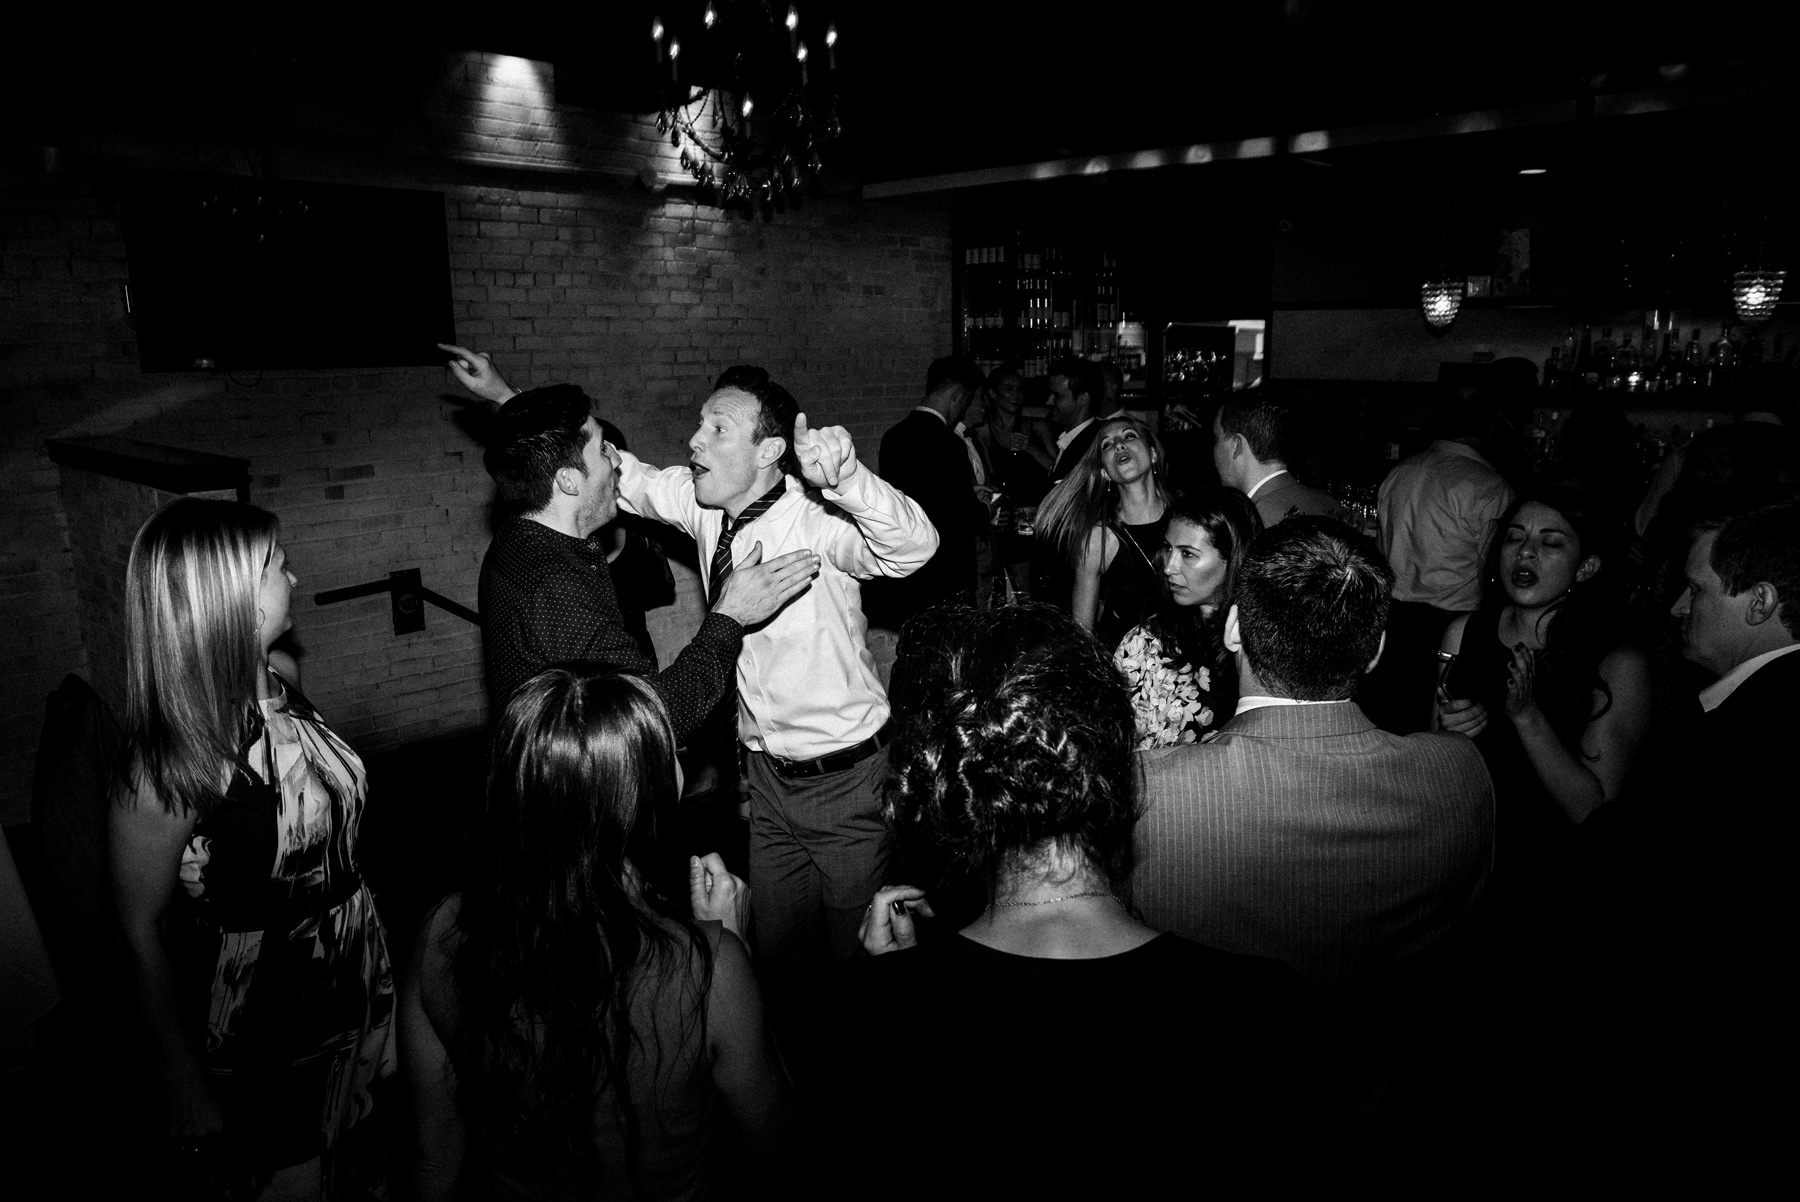 Brix & Mortar Wedding Guests Dancing in Black and White